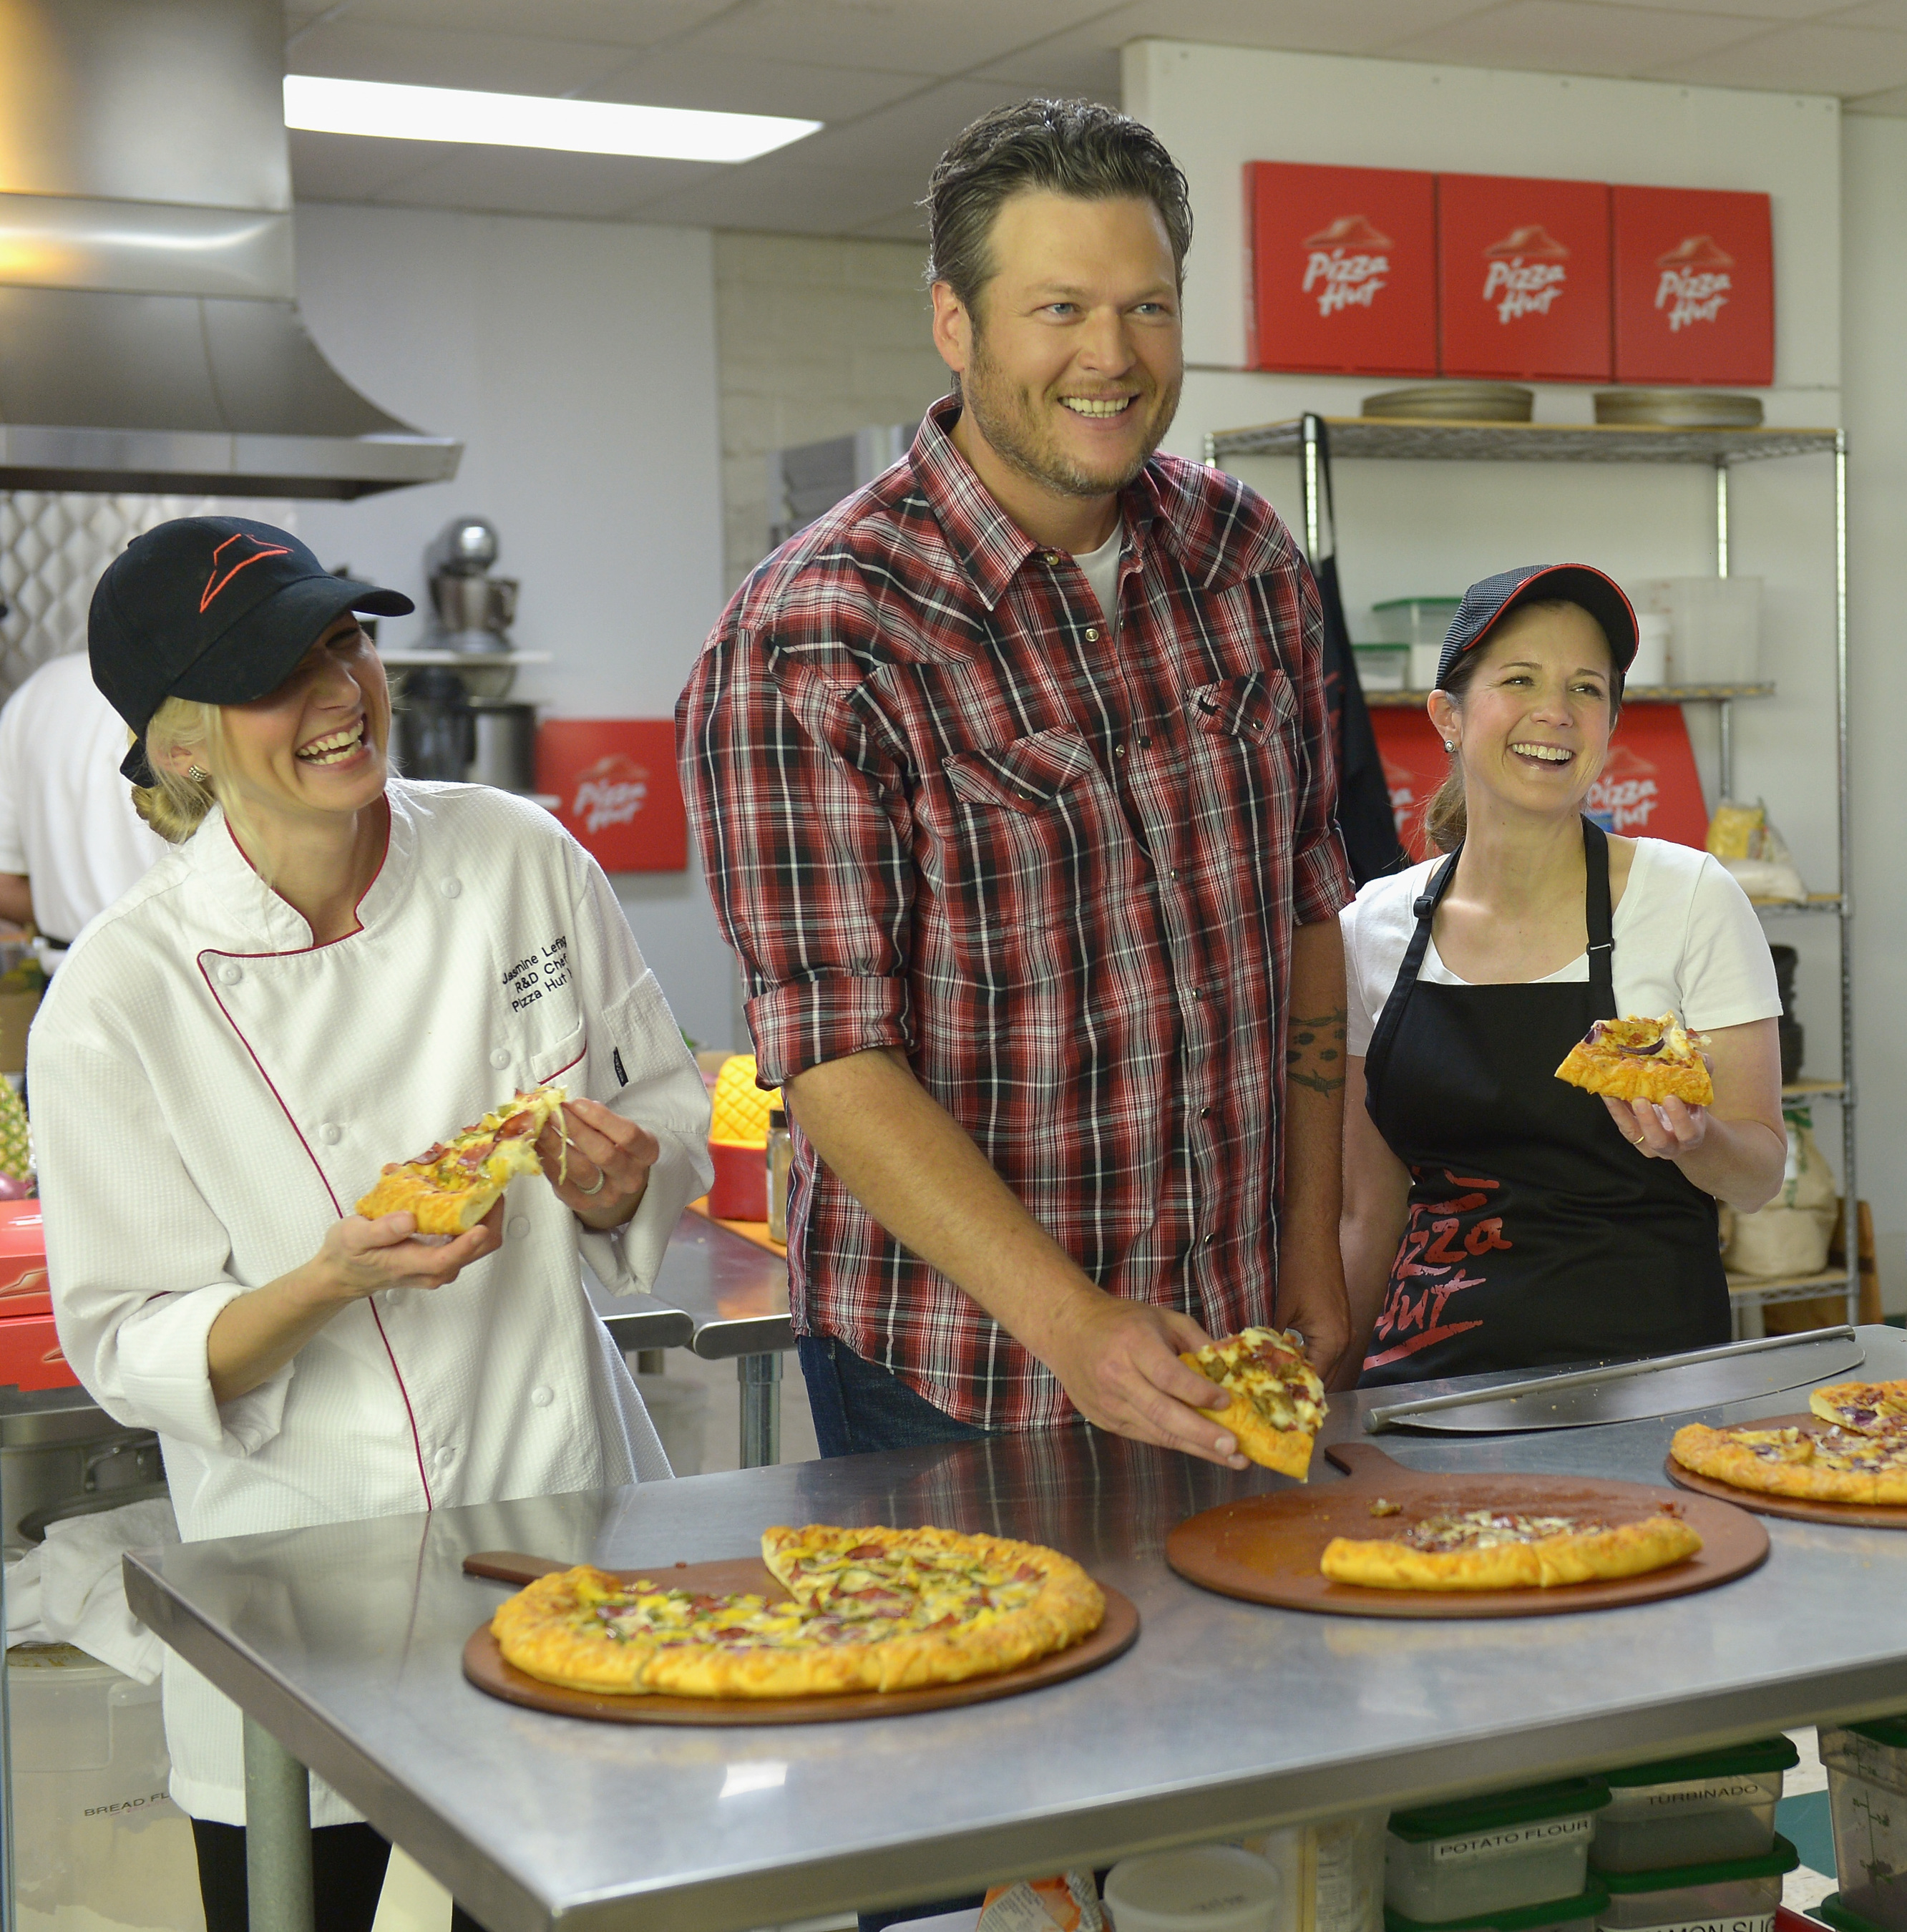 Pizza Hut Partners with Country Music Star Blake Shelton on New Line of BBQ Pizzas